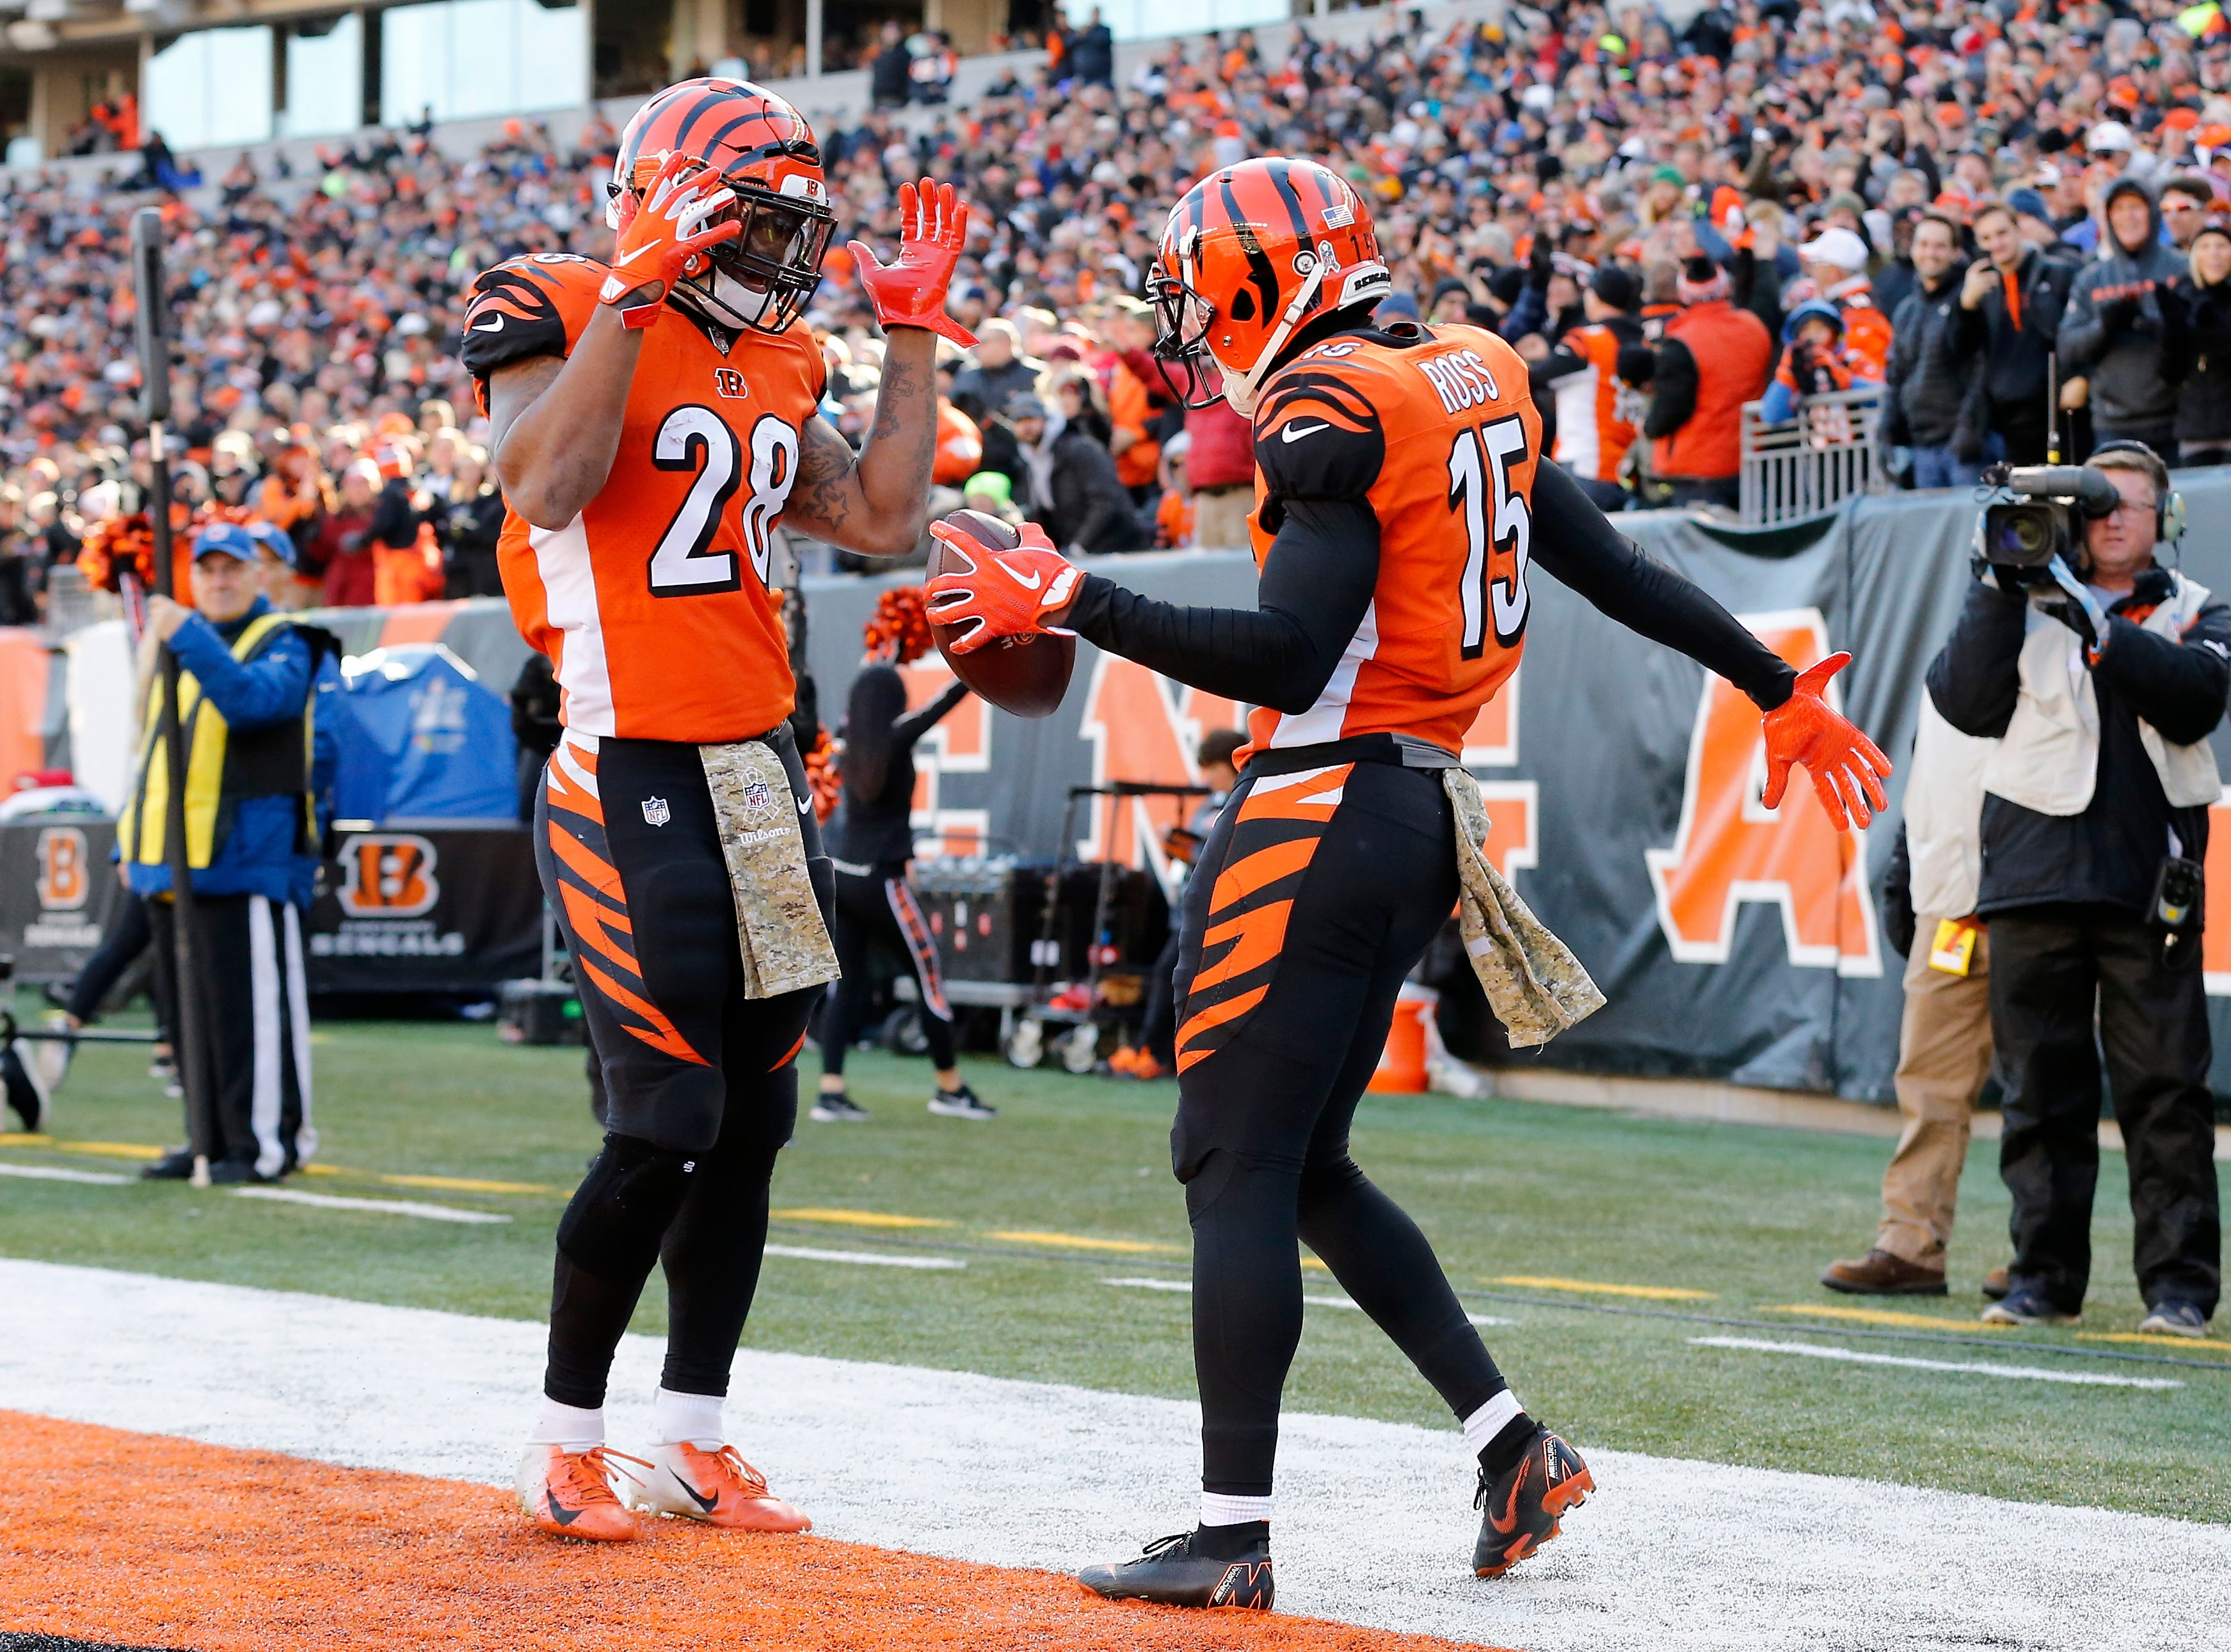 Cincinnati Bengals running back Joe Mixon (28) and wide receiver John Ross (15) dance after the Ross touchdown reception in the first quarter of the NFL Week 10 game between the Cincinnati Bengals and the New Orleans Saints at Paul Brown Stadium in downtown Cincinnati on Sunday, Nov. 11, 2018. The Saints led 35-7 at halftime.